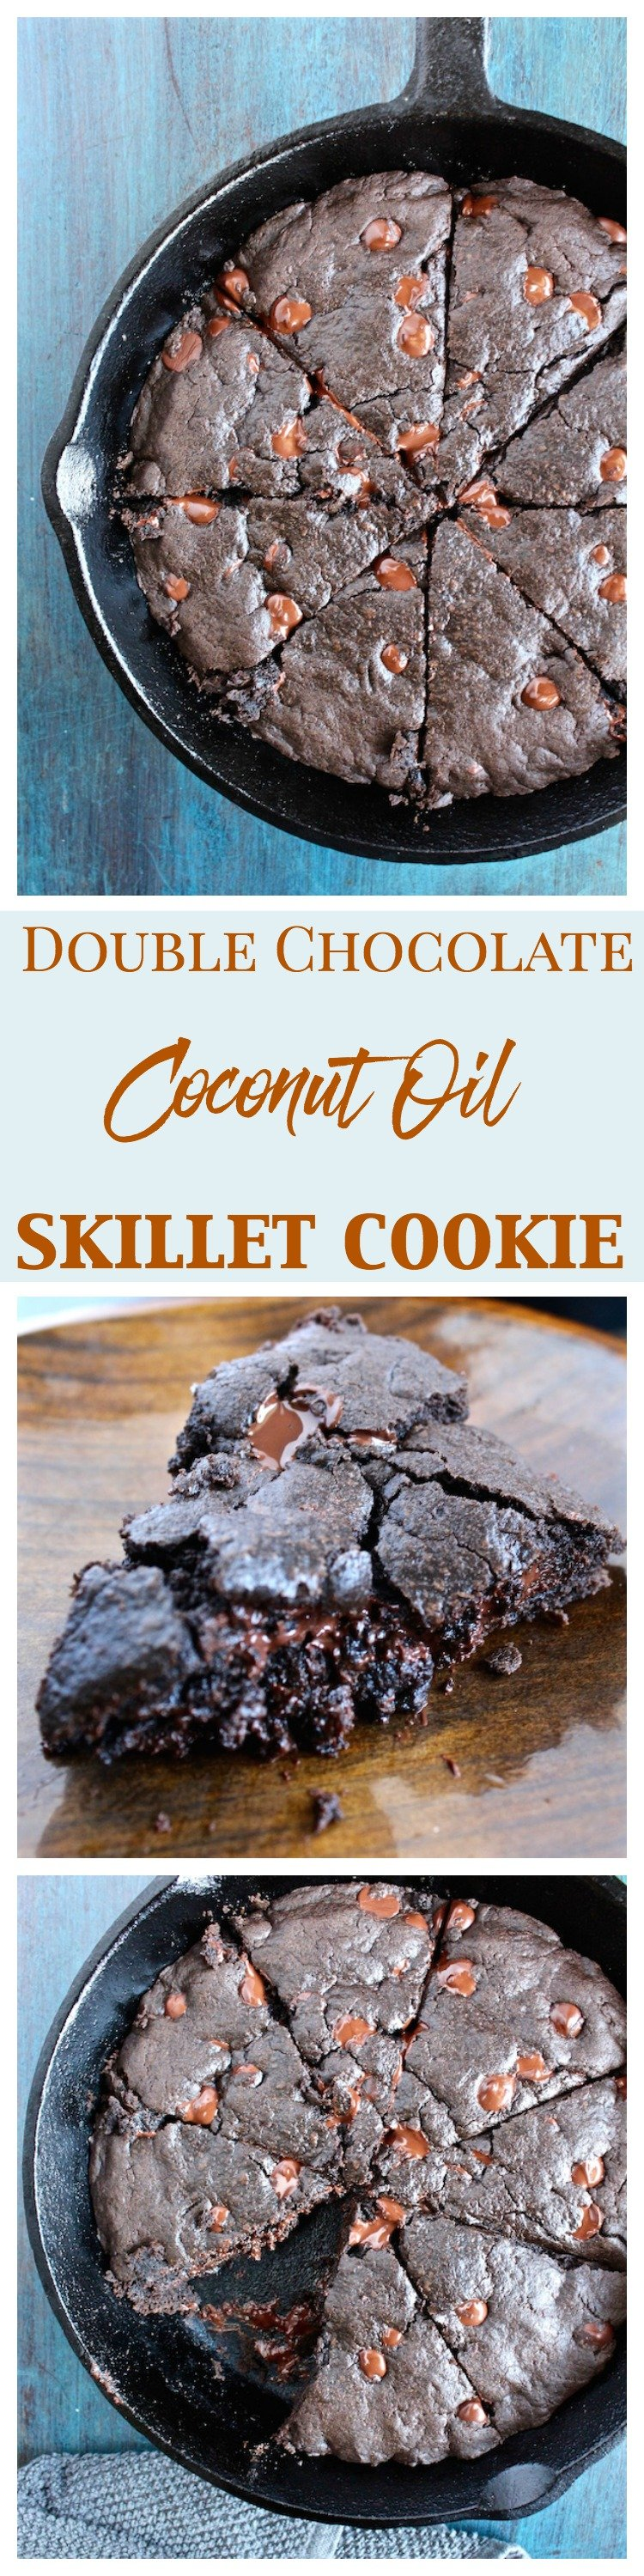 double chocolate coconut oil skillet cookie pinterest